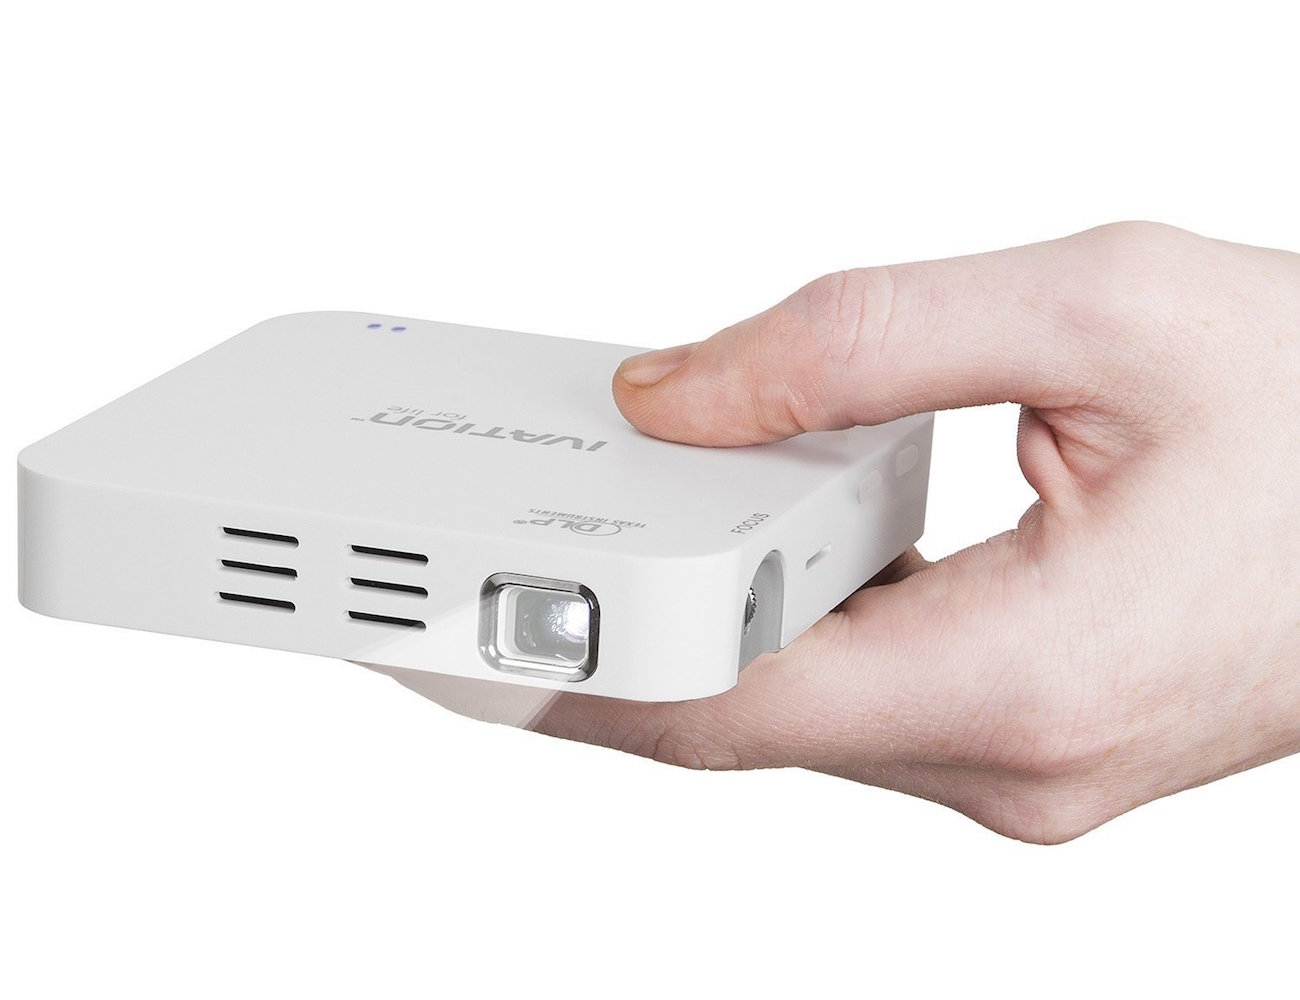 Portable rechargeable hdmi projector by ivation gadget flow for Portable hdmi projector